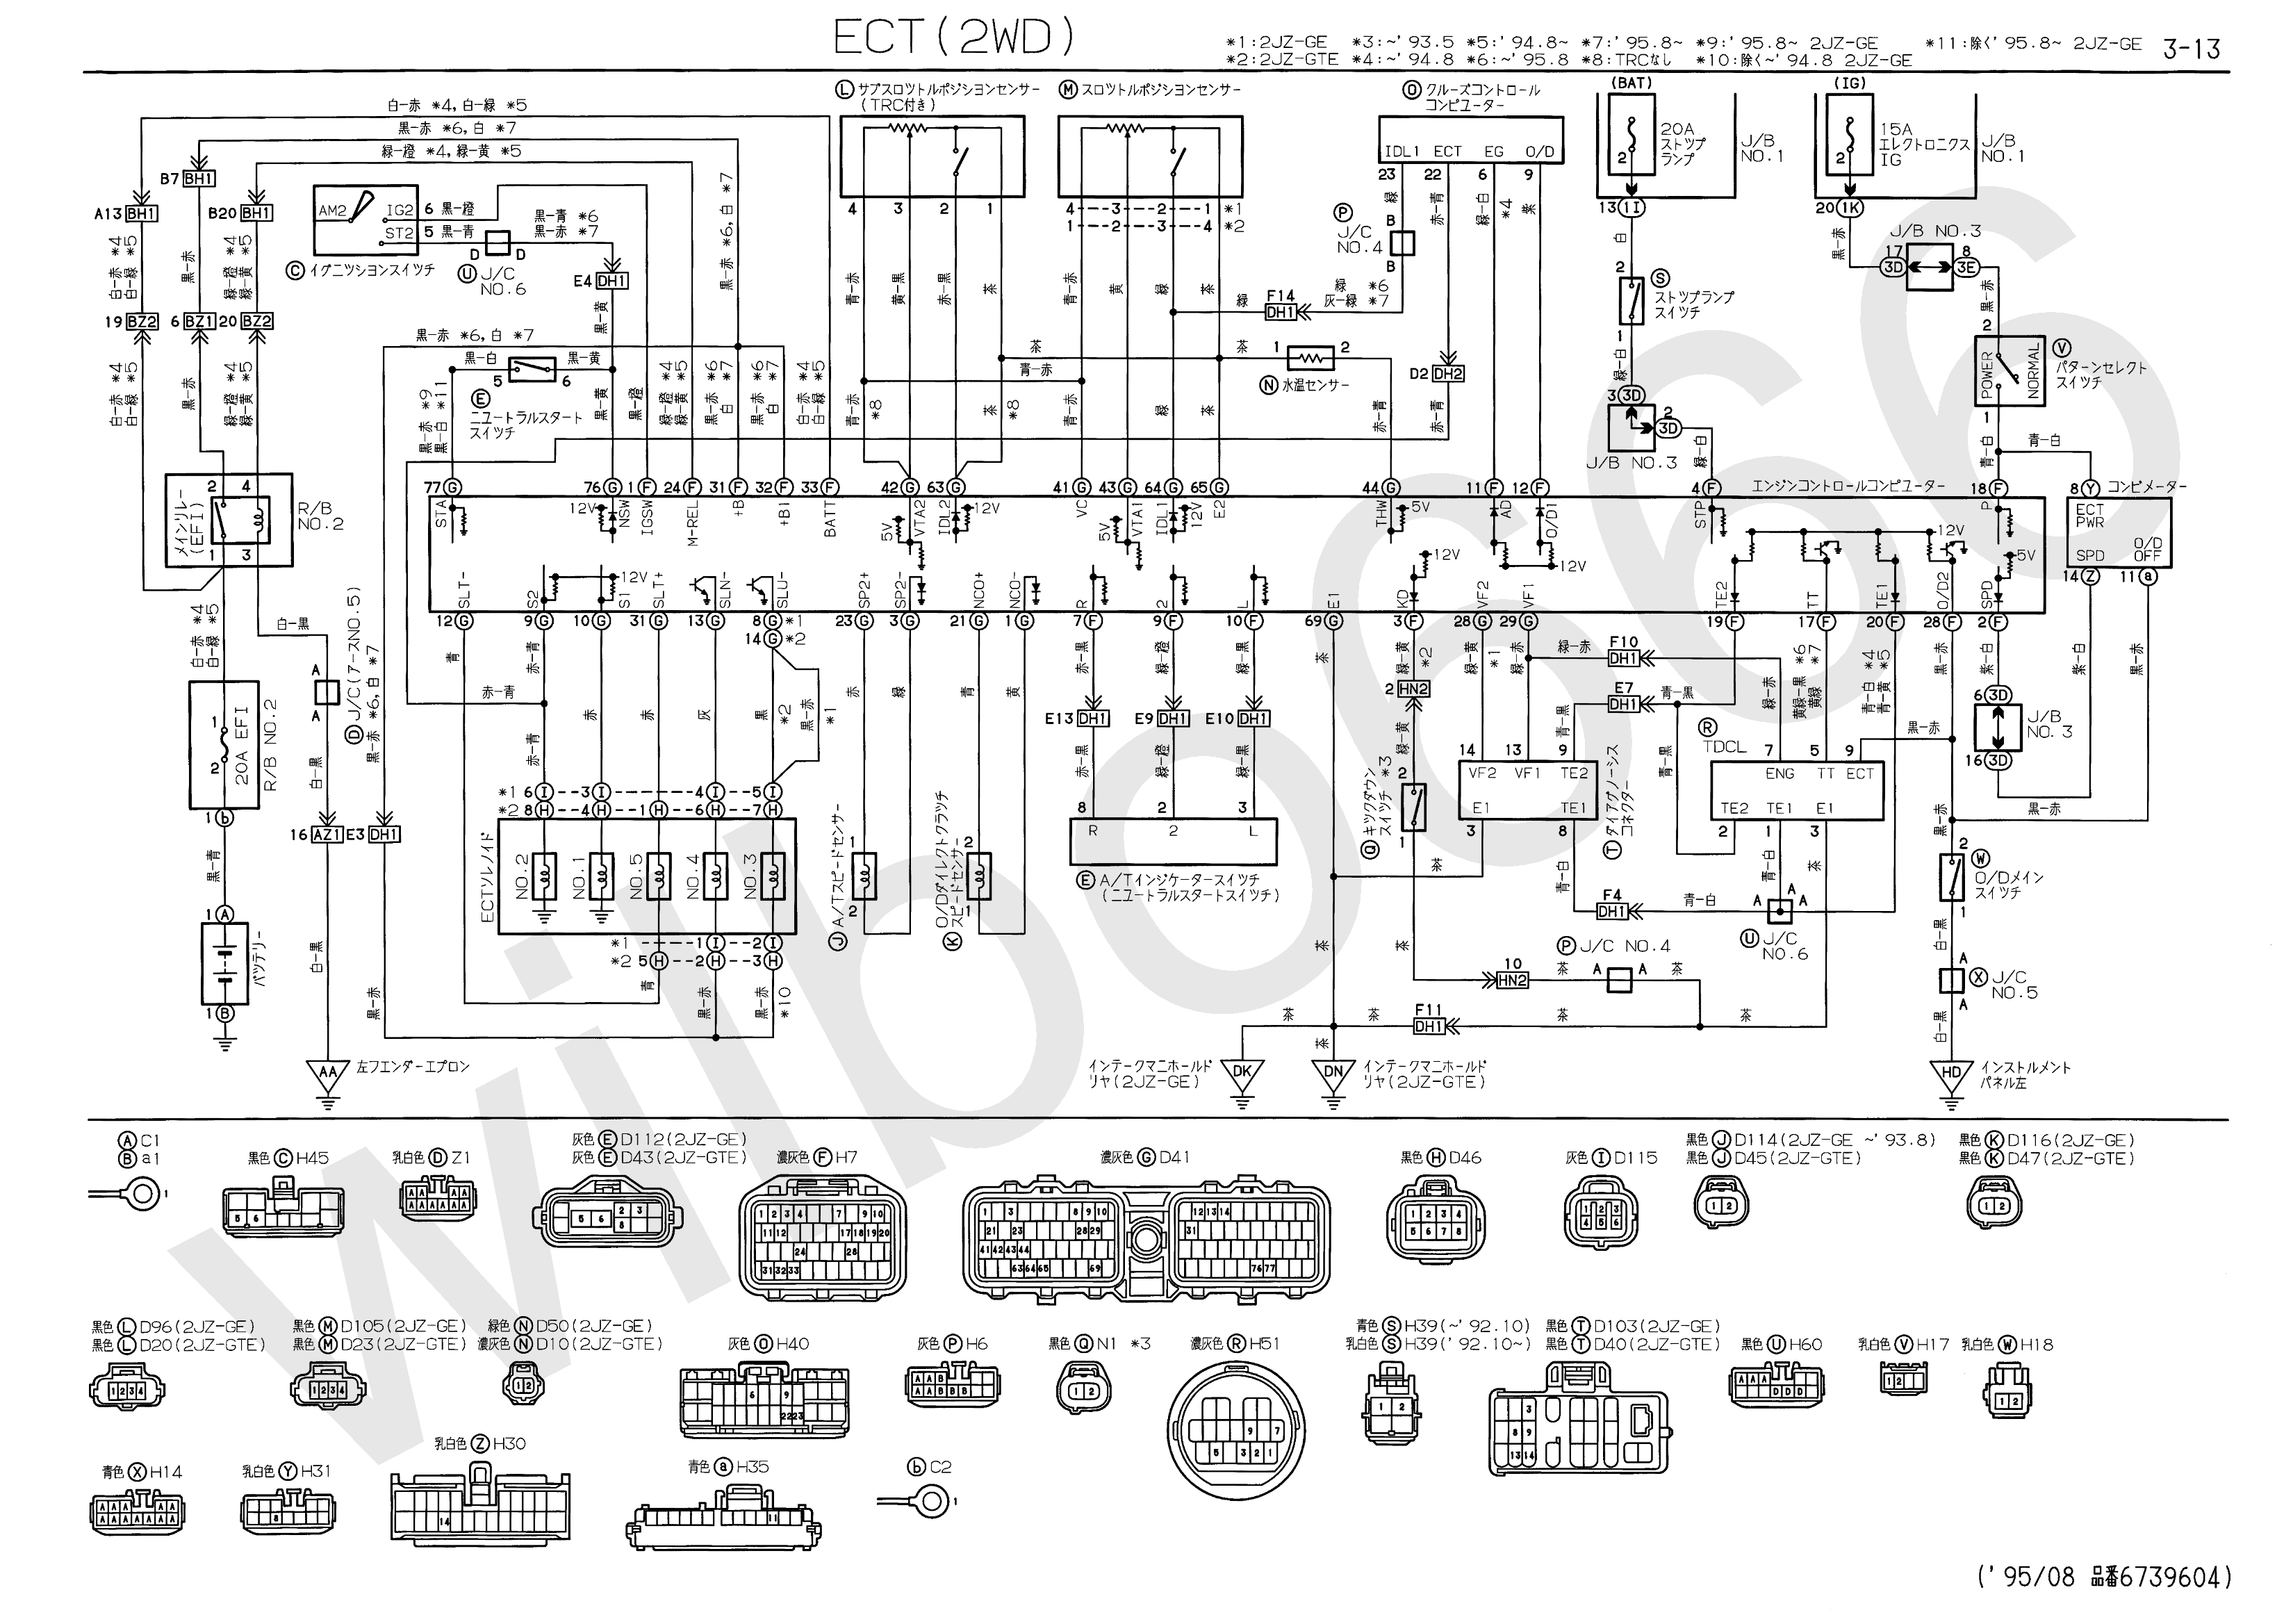 JZS14%23%2C+UZS14%23+Electrical+Wiring+Diagram+6739604+3 13 toyota a56811 wiring diagram toyota wiring diagrams instruction toyota tamaraw fx electrical wiring diagram at alyssarenee.co